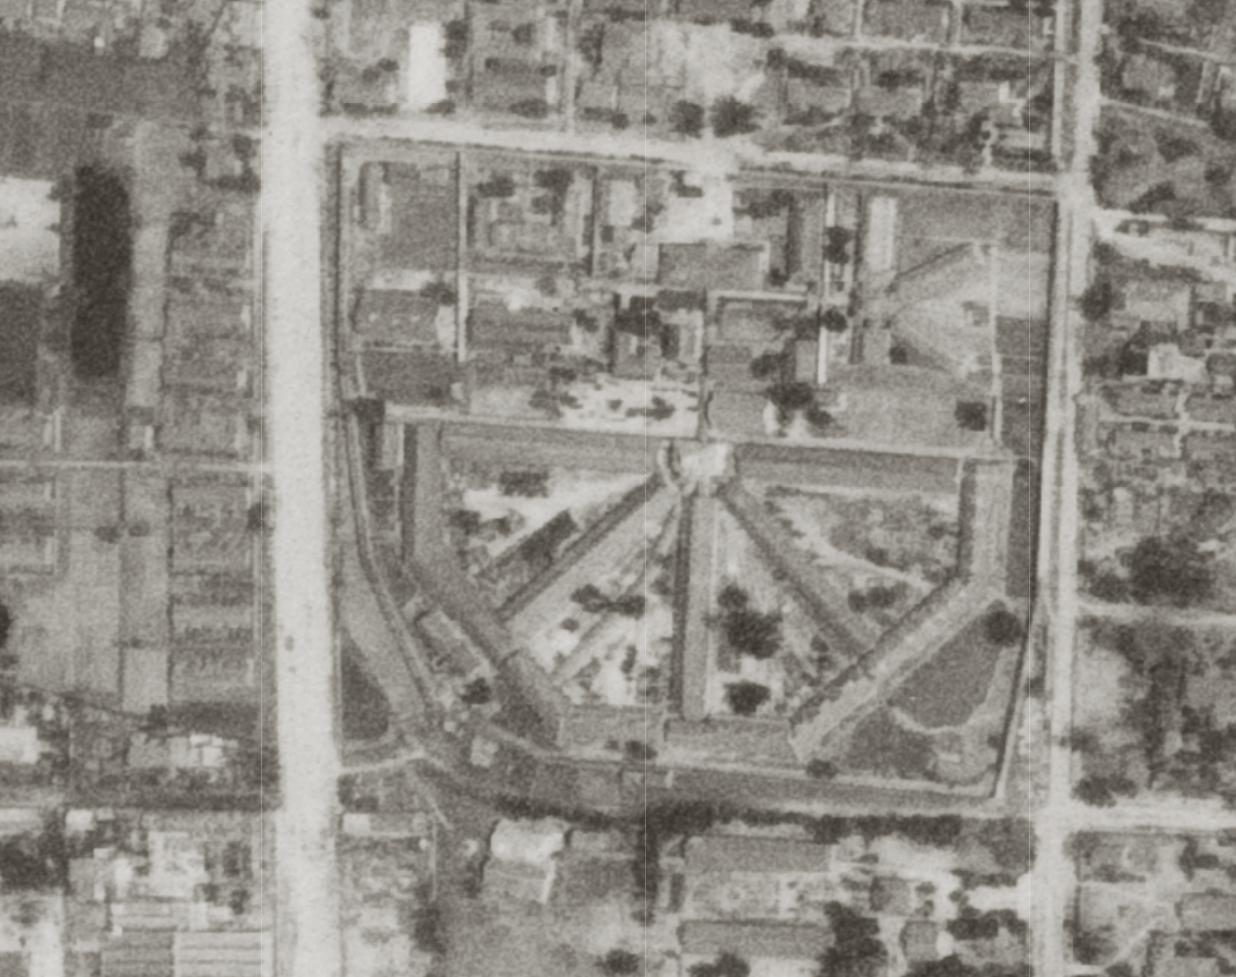 The prison in 1948. The preserved part is the tall structure at the hub of the cell blocks.